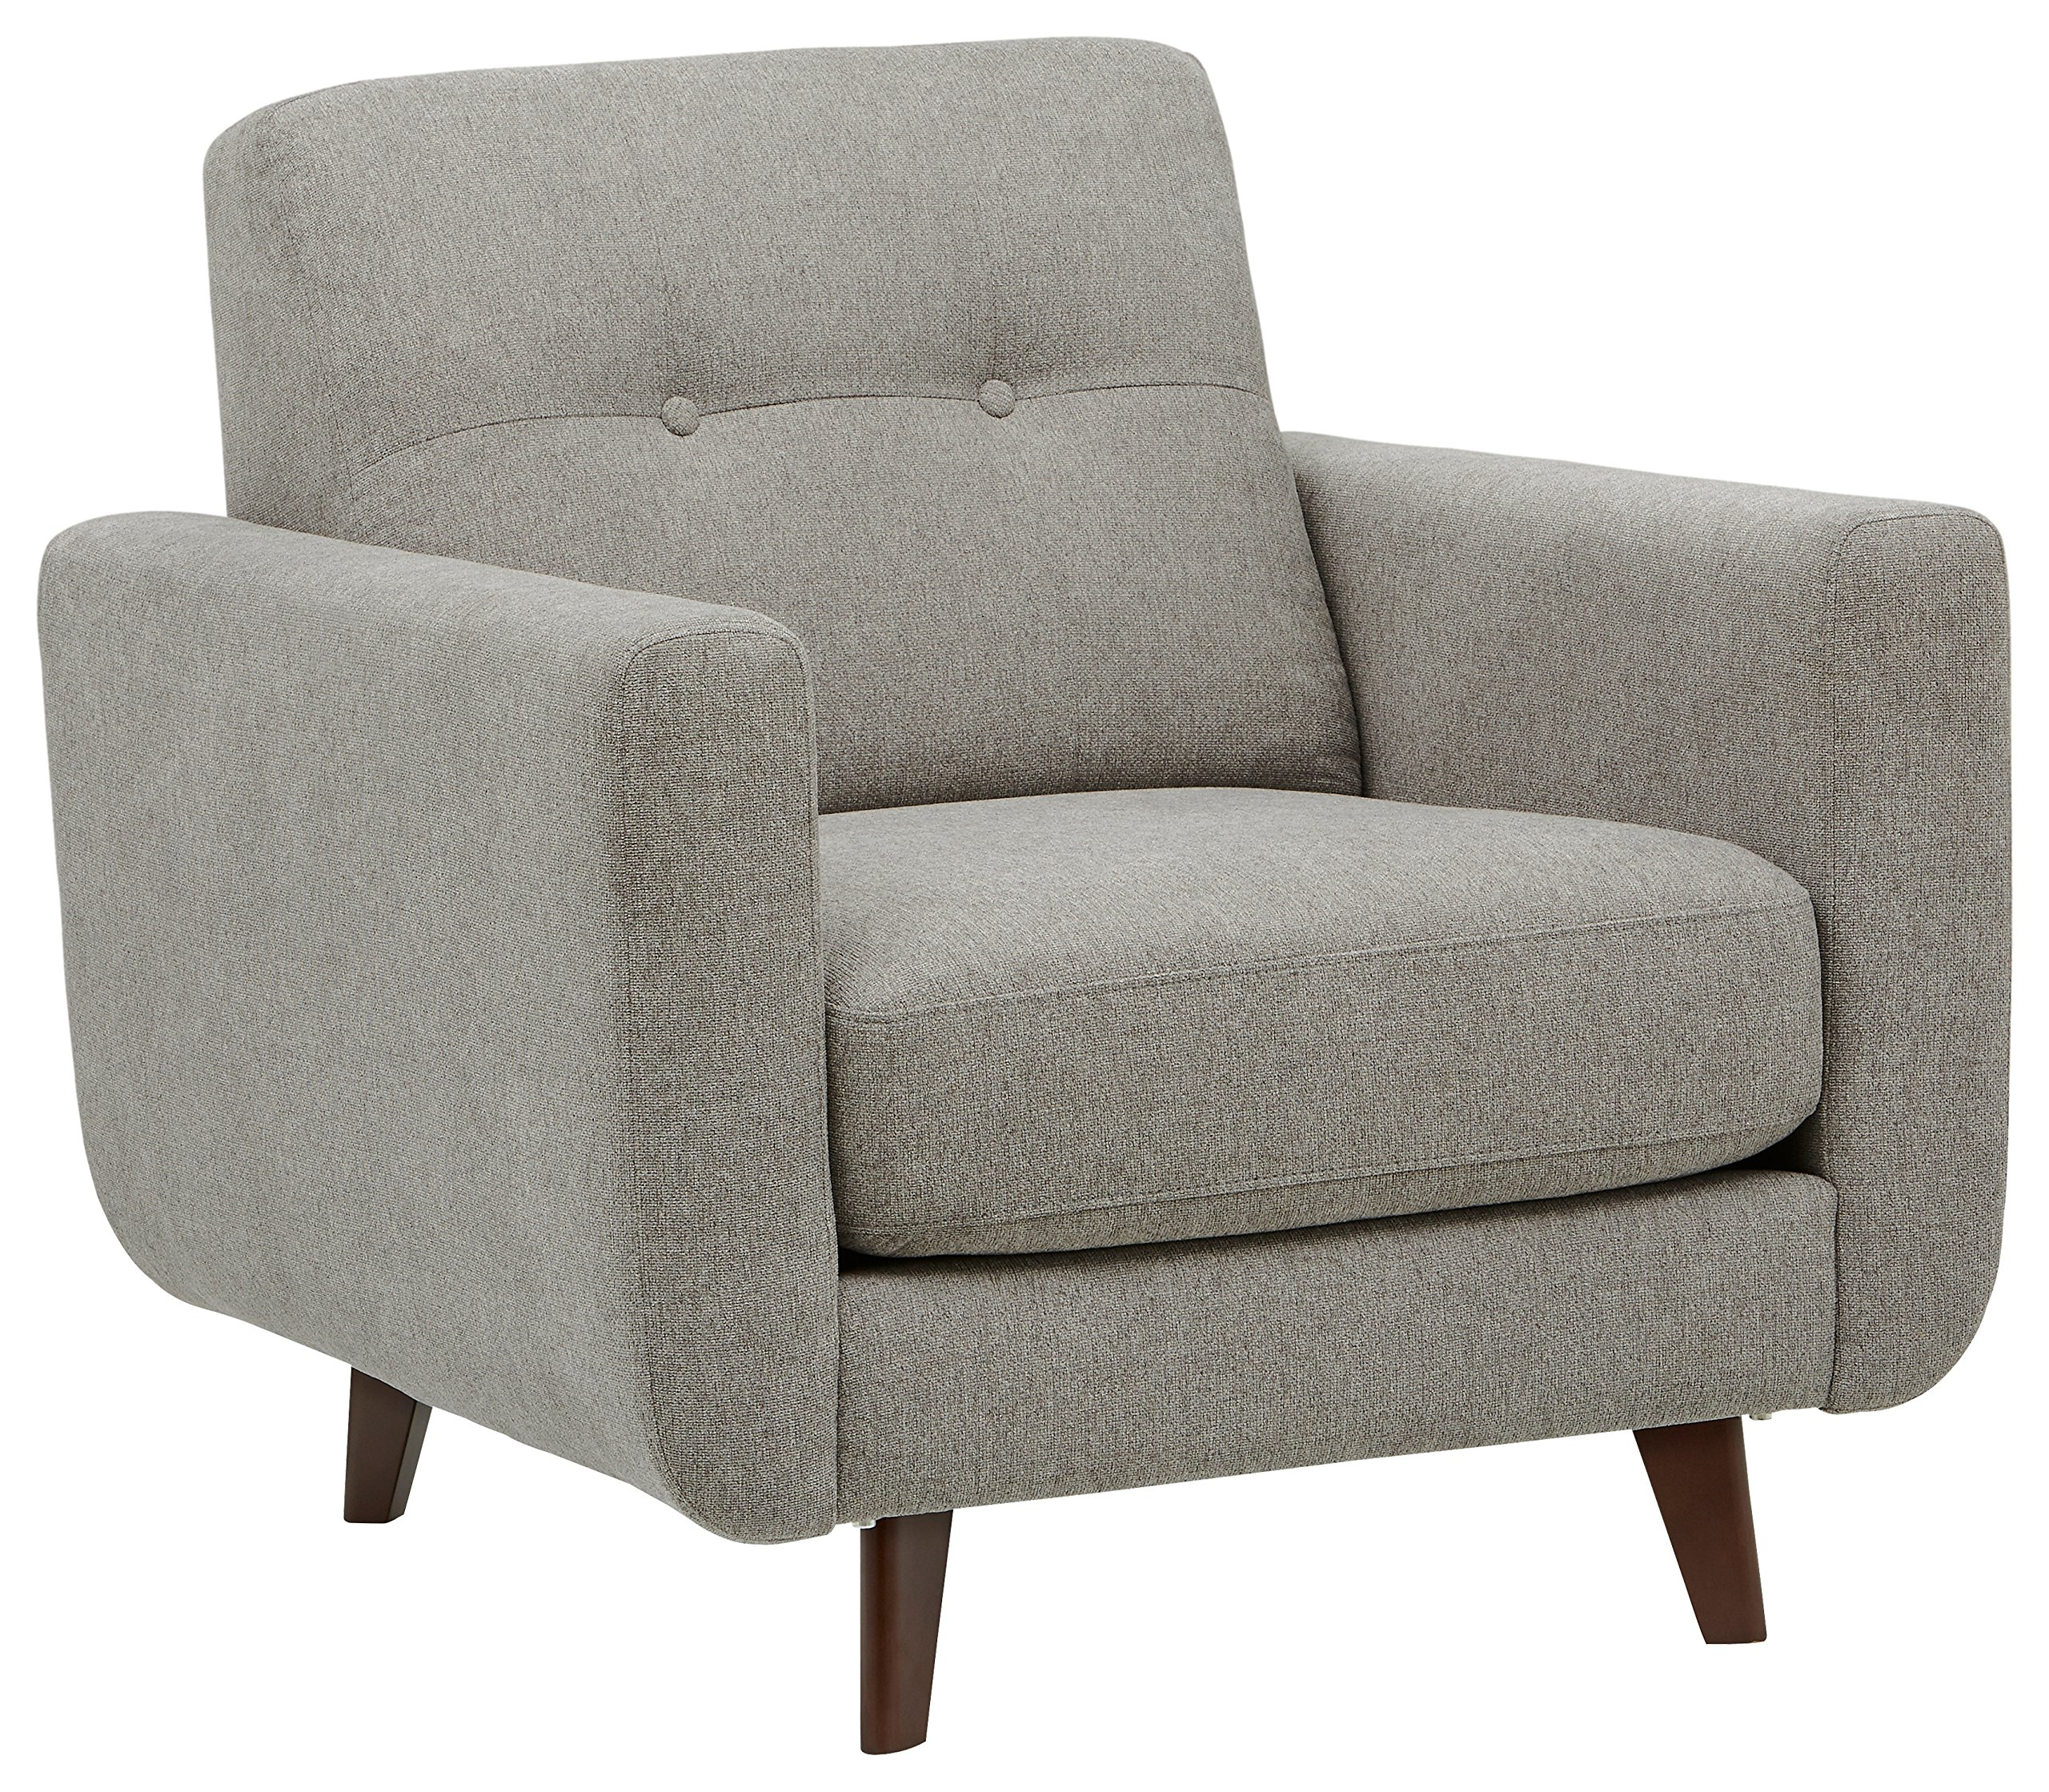 Rivet Sloane Mid-Century Modern Armchair with Tapered Legs, 32.7''W, Pebble by Rivet